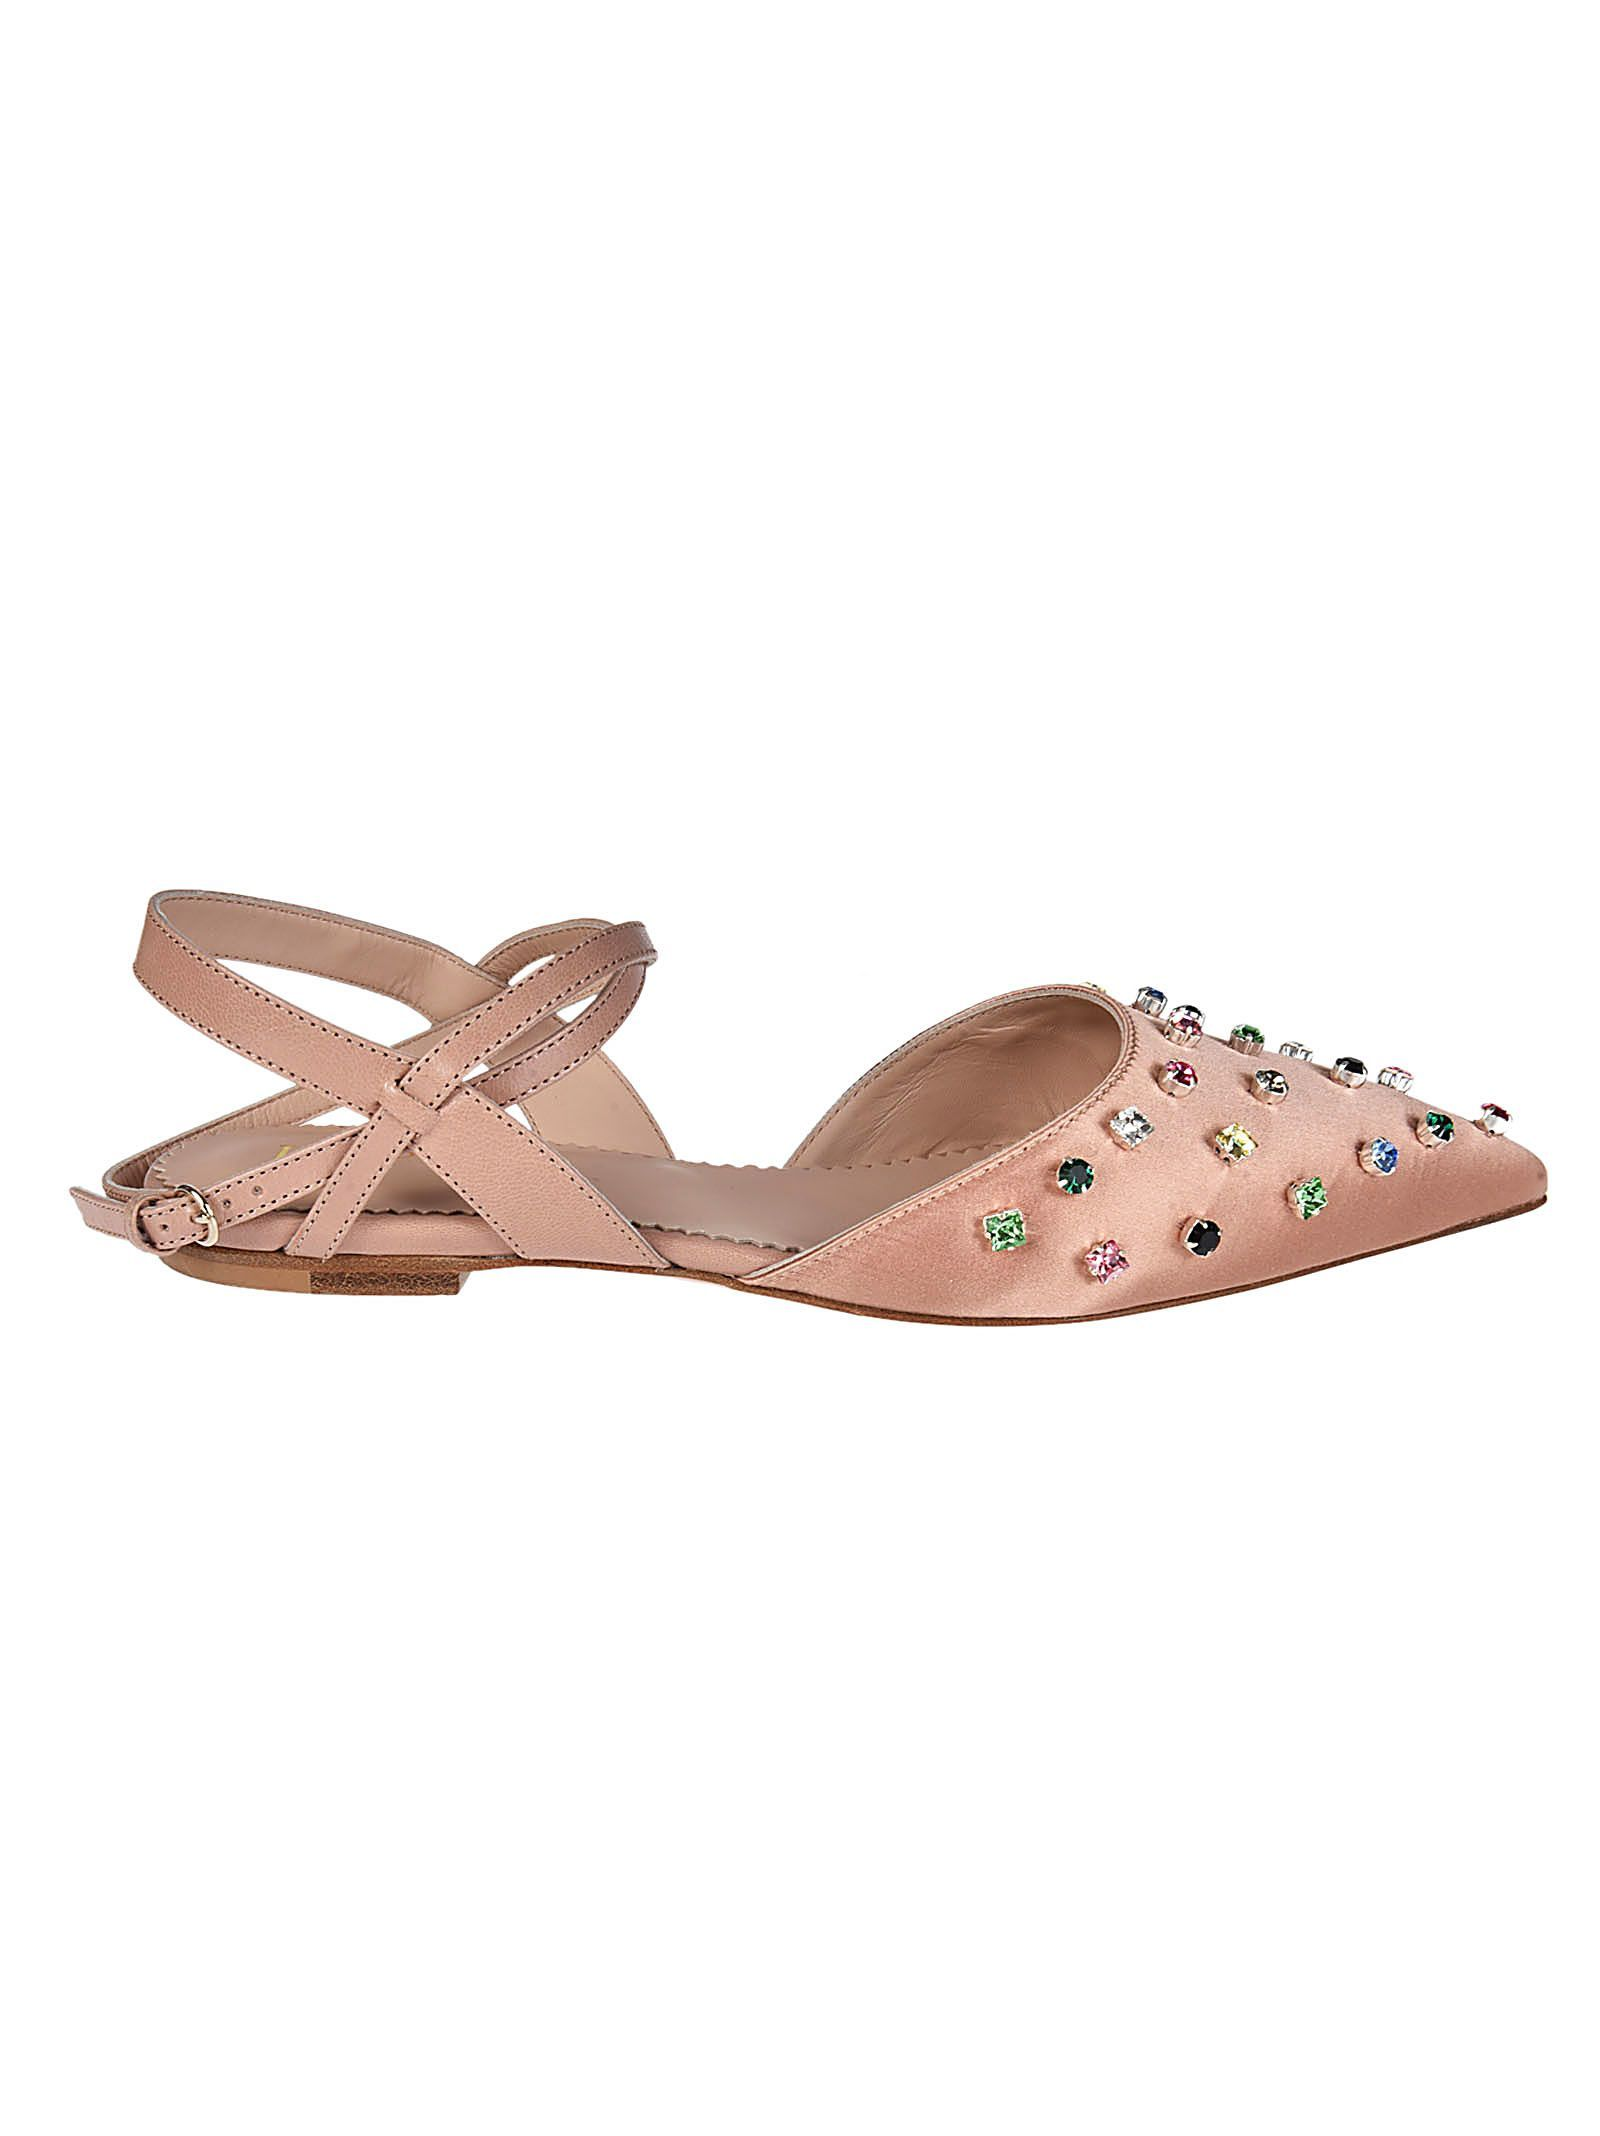 Offer Wholesale Price Sale Online RED Valentino Embellished Flat Sandals qF5jydCZ3E